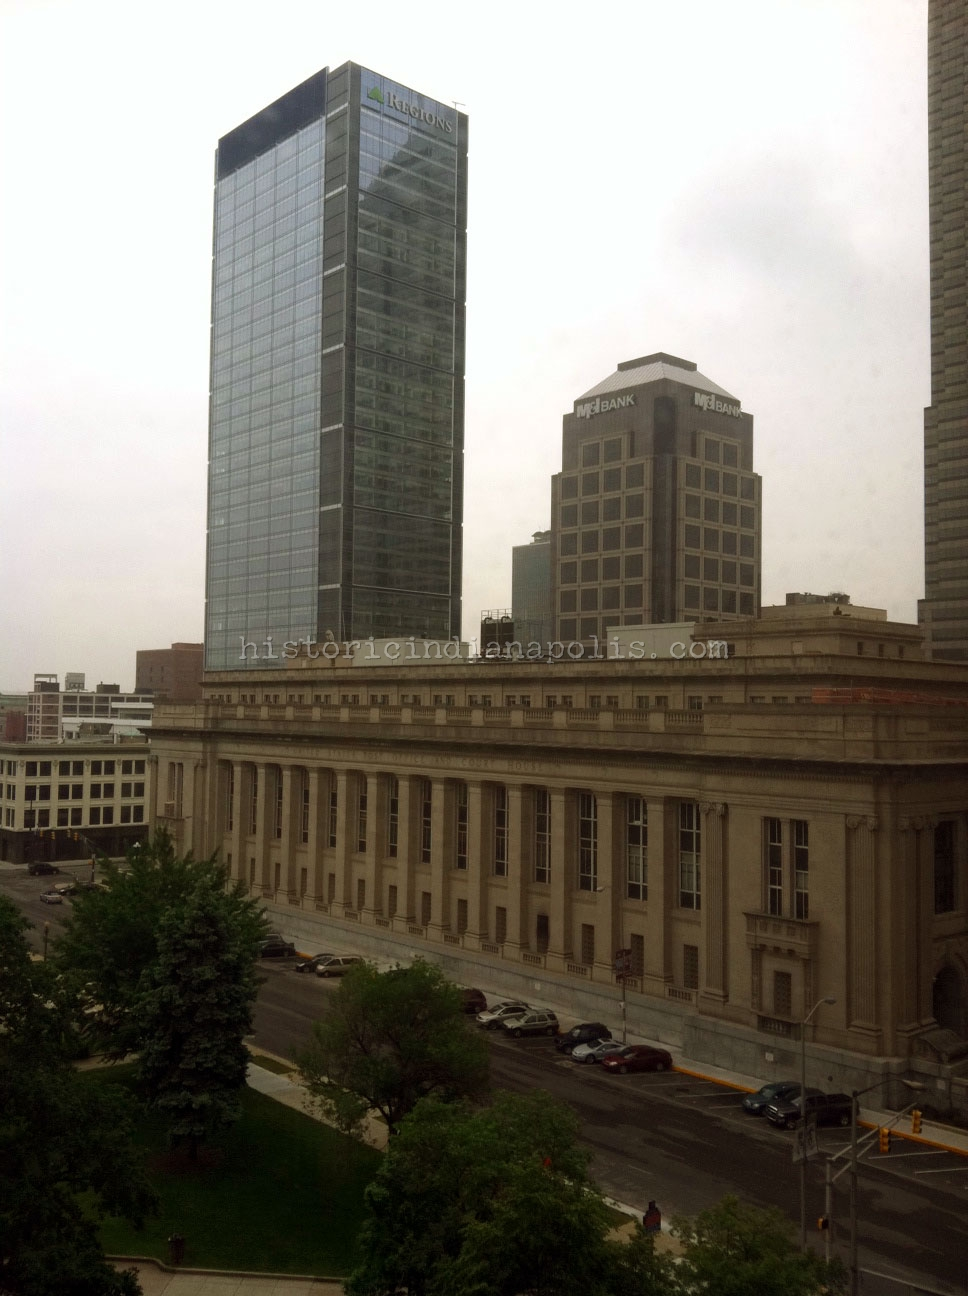 Room With A View: Chamber of Commerce Building